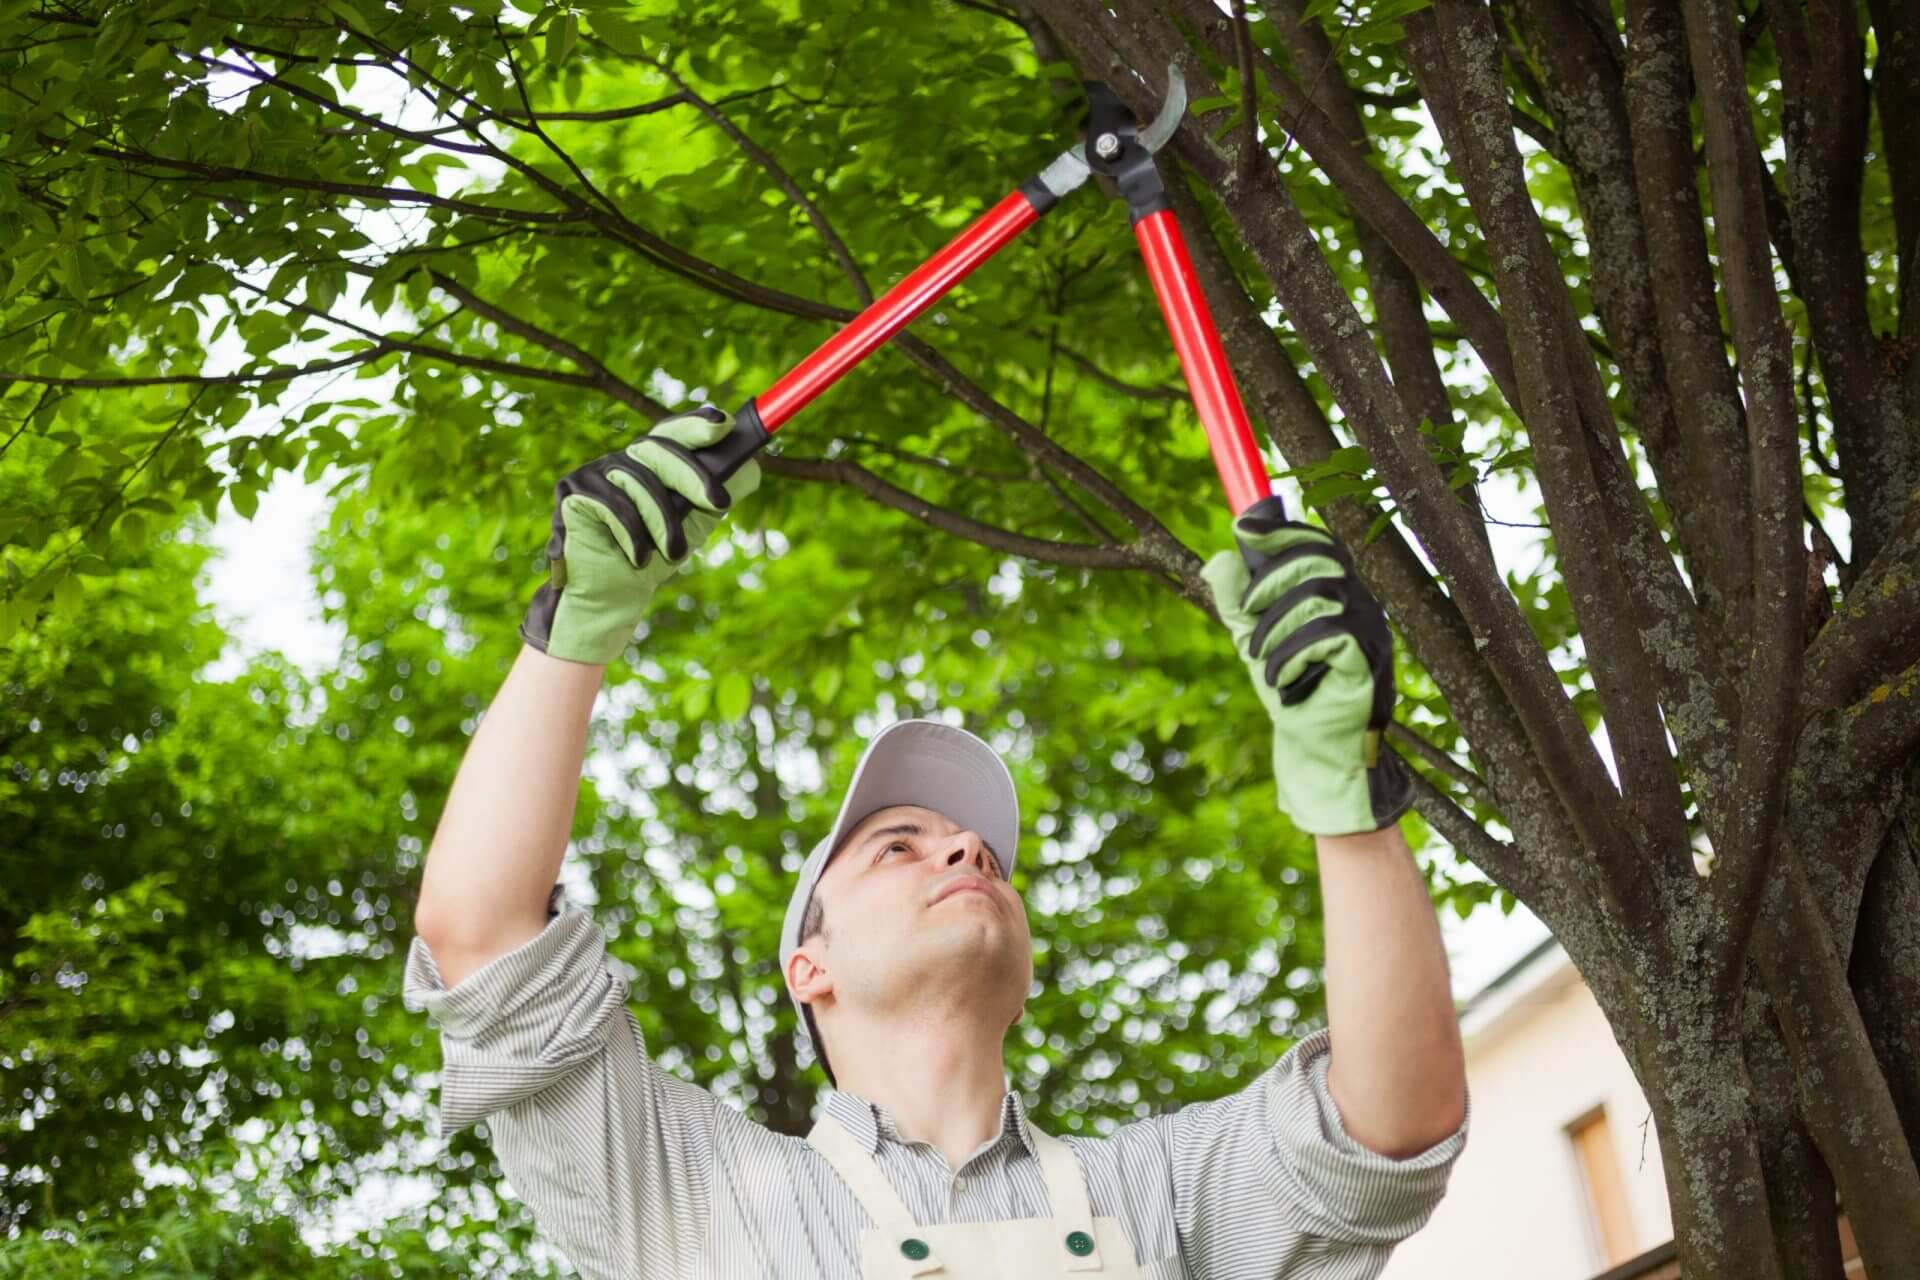 Tree Shrub Pruning